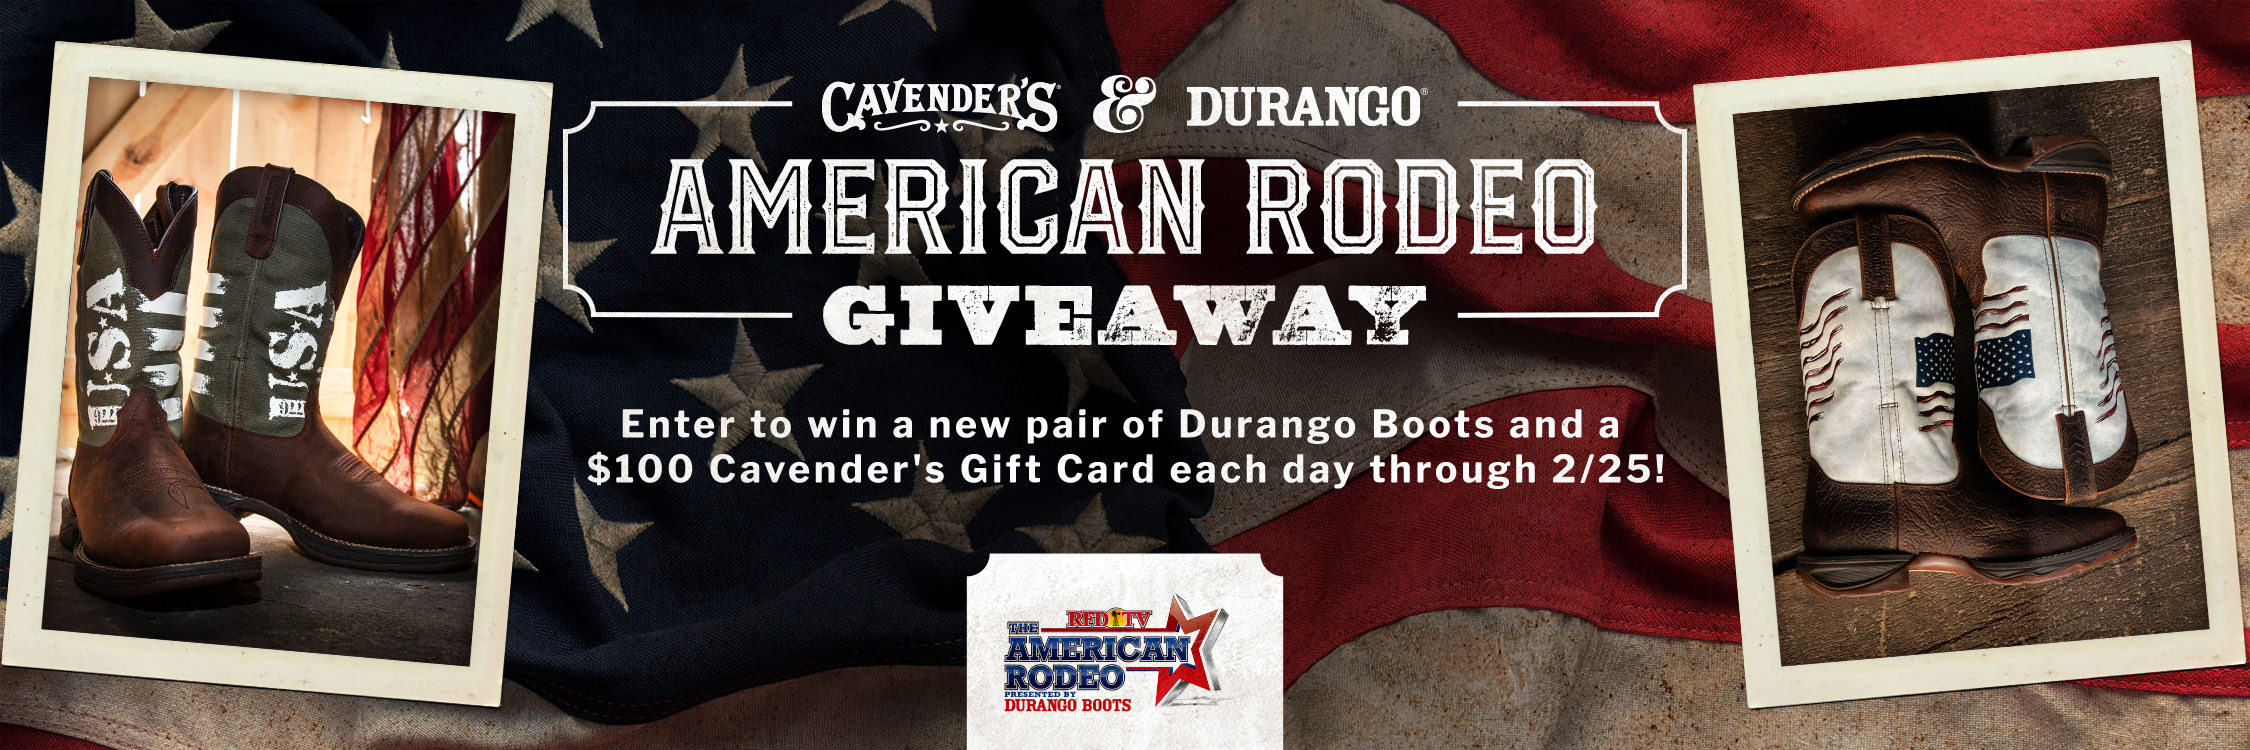 American Rodeo Giveaway. Enter to win a new pair of Durango Boots and a Cavender's $100 Gift Card